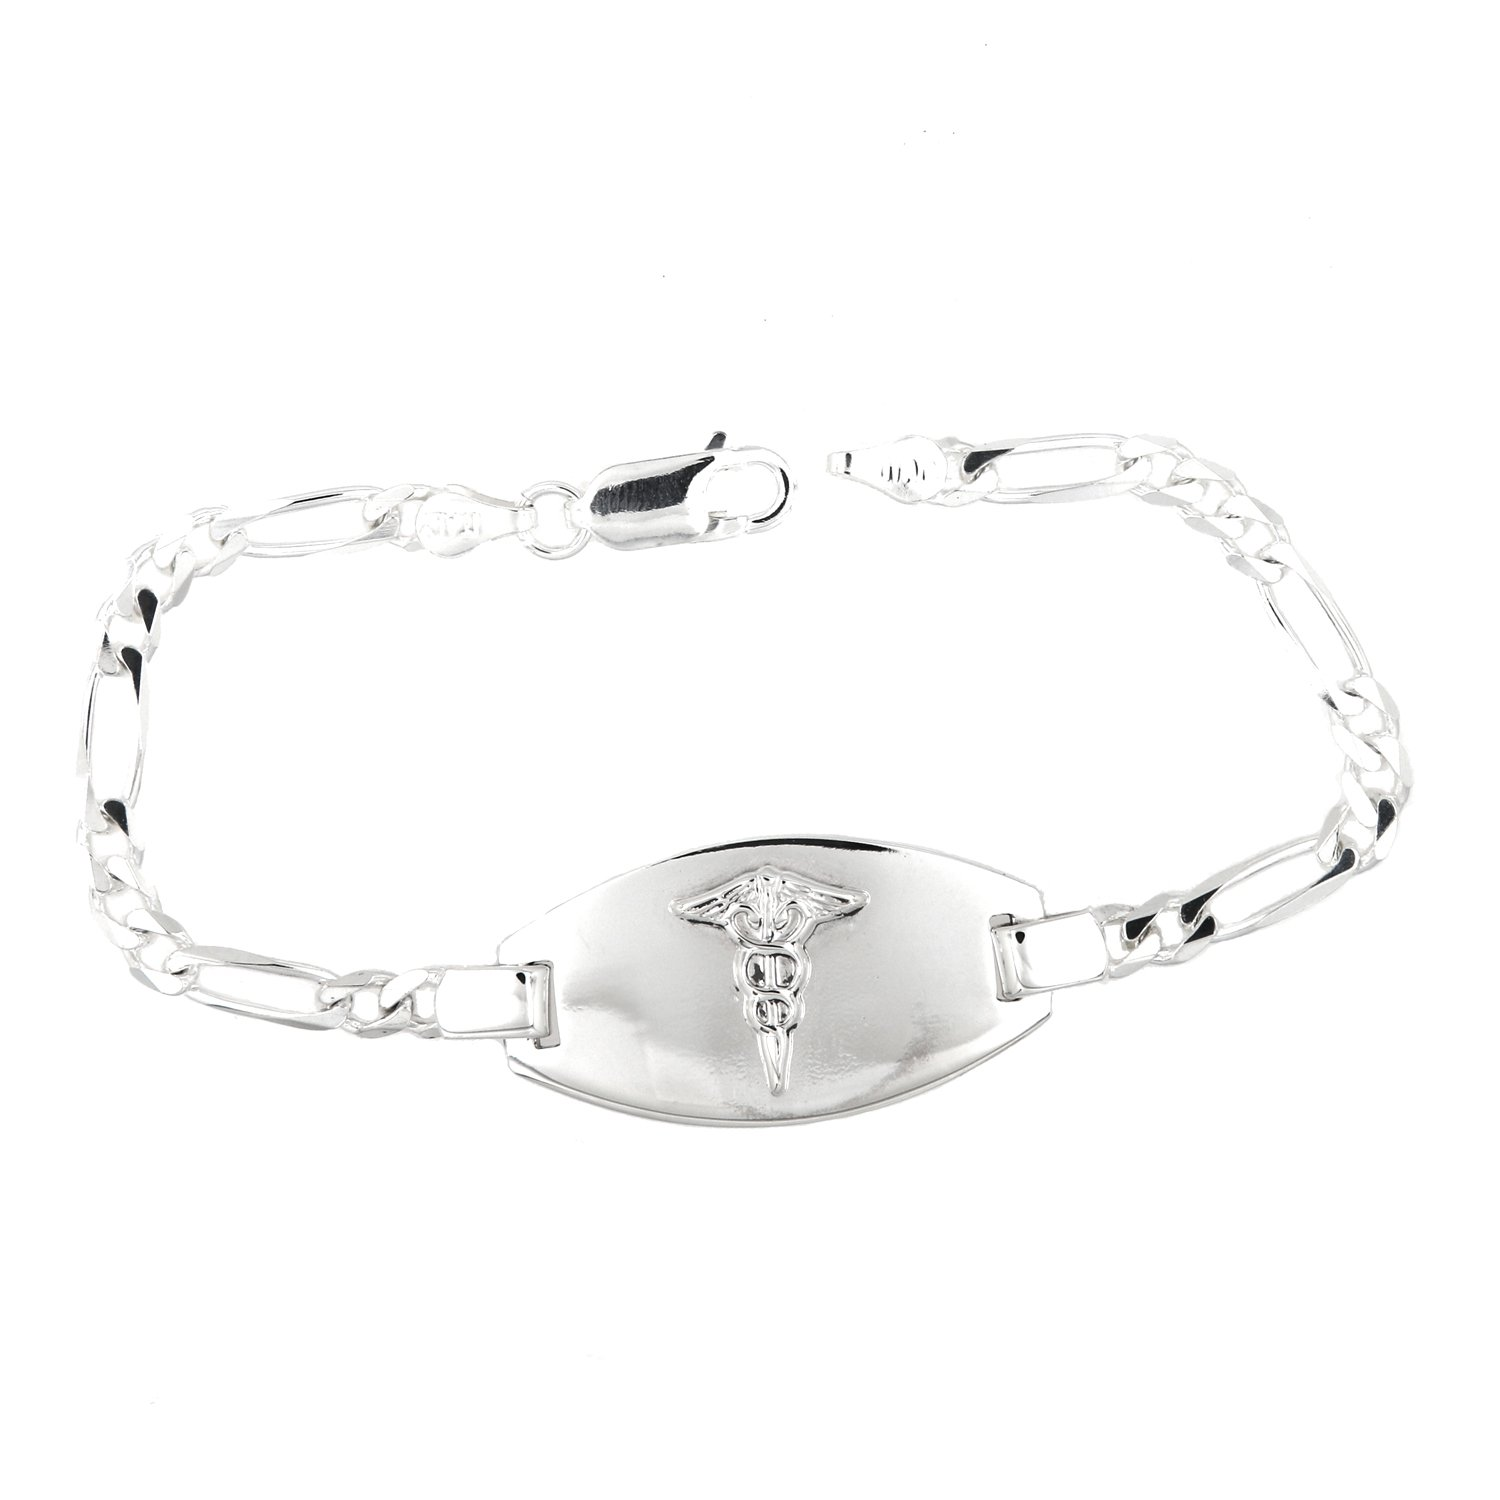 Lgu Sterling Silver Polished Medical Alert Identification Figaro Chain Engravable Bracelet (8 inches)